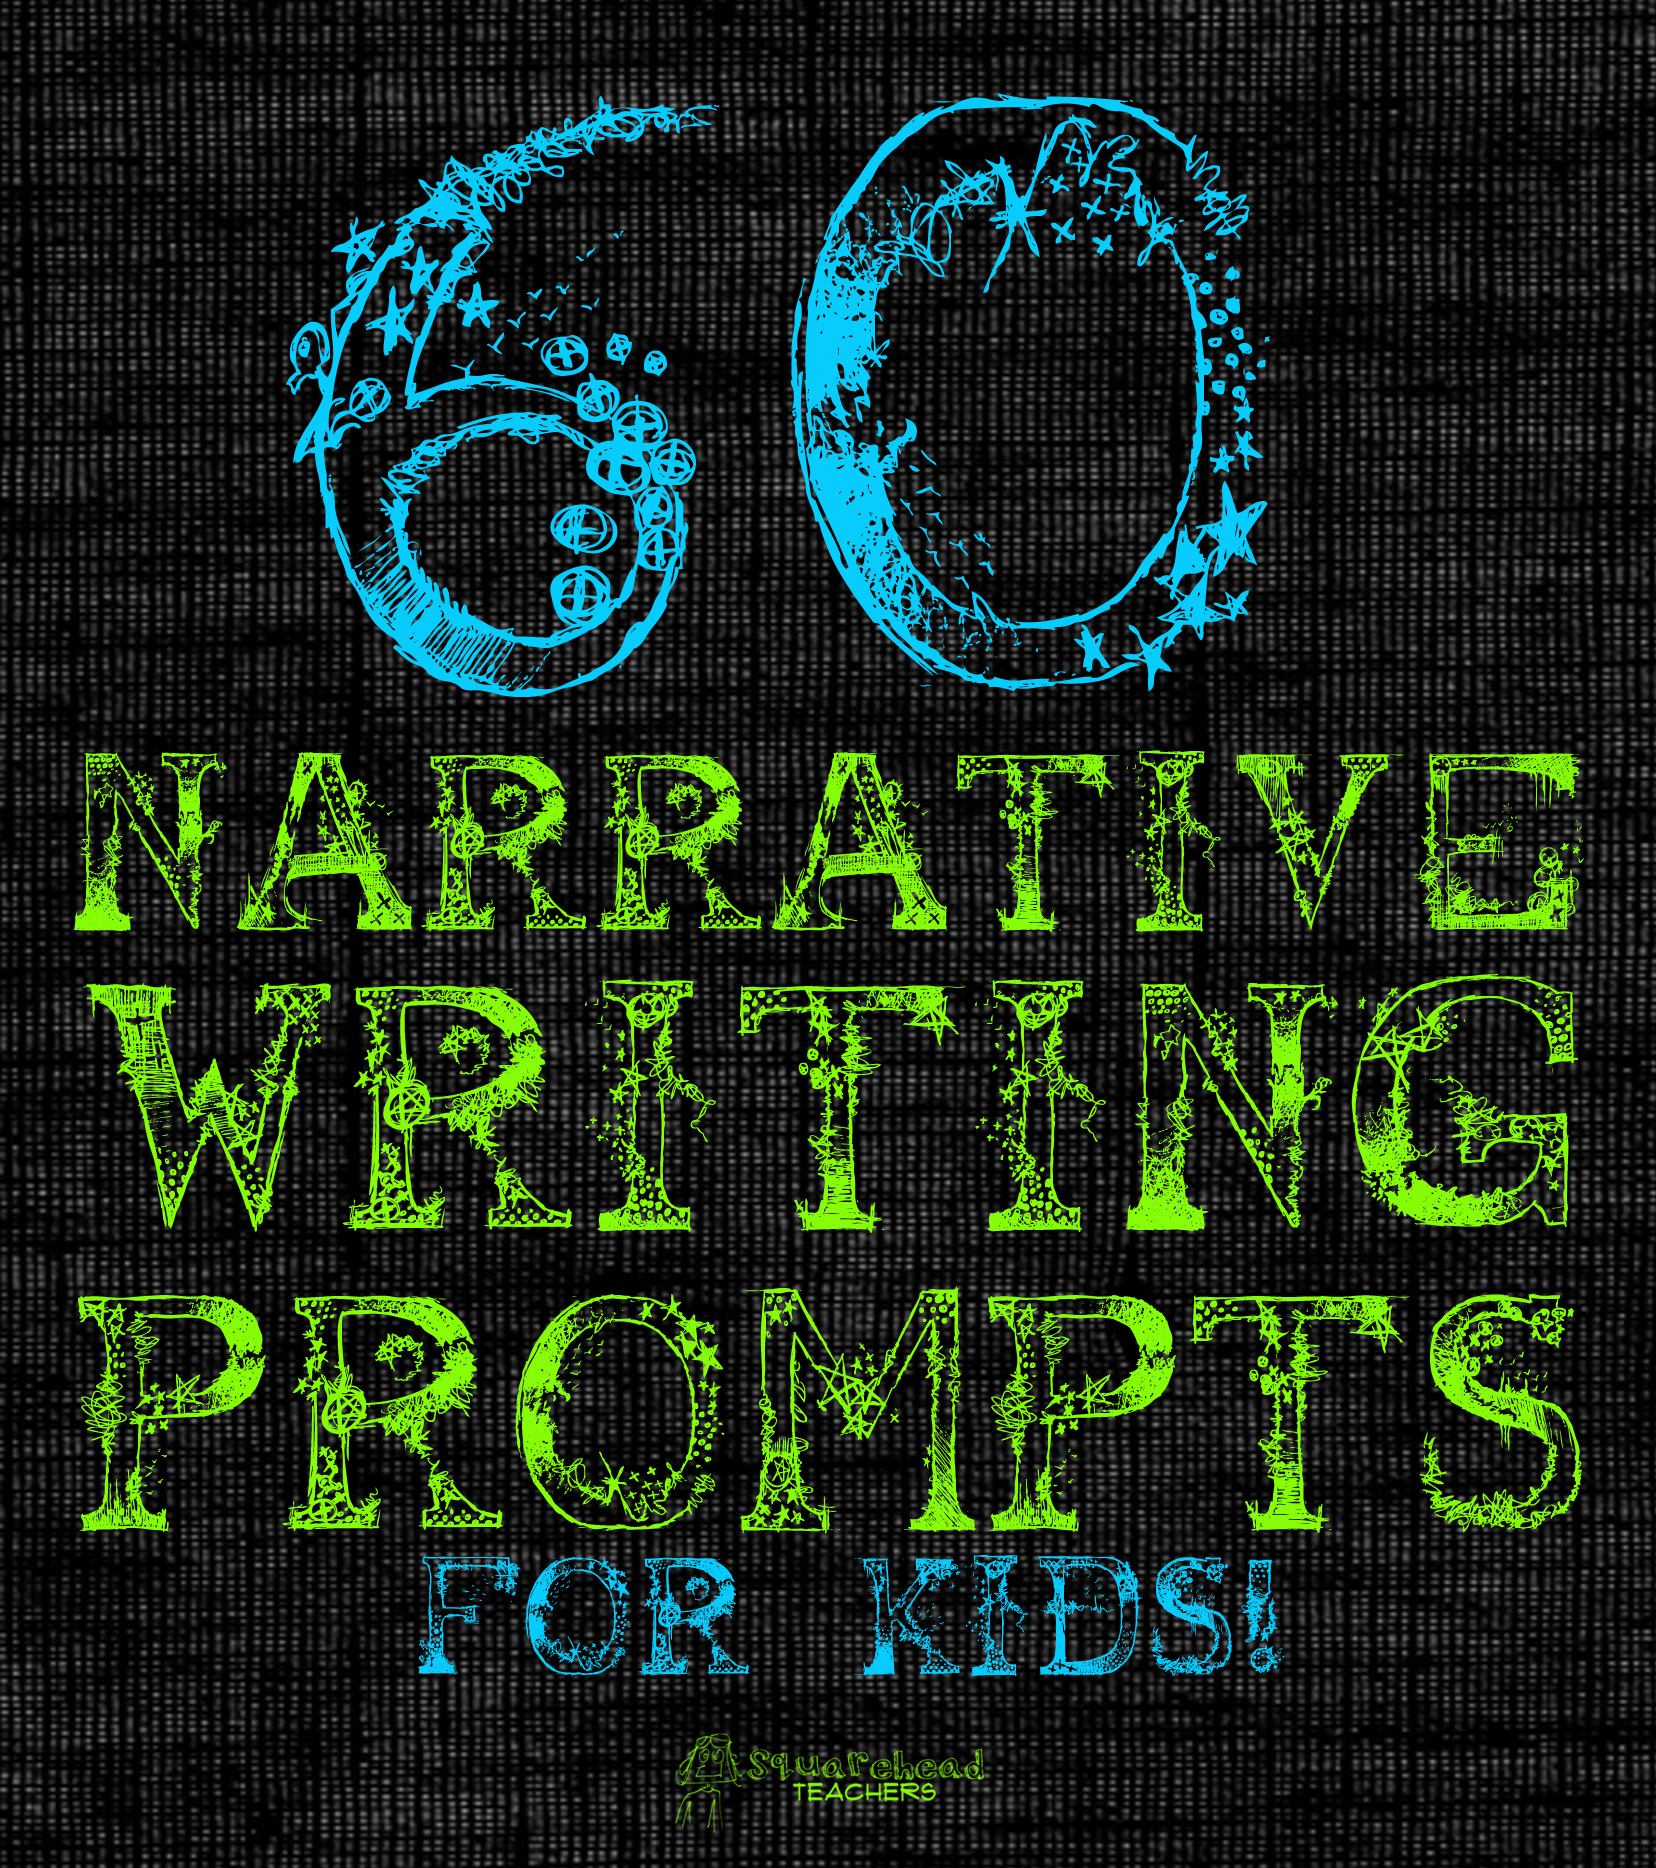 60 narrative writing prompts for kids squarehead teachers 60 narrative writing prompts for kids